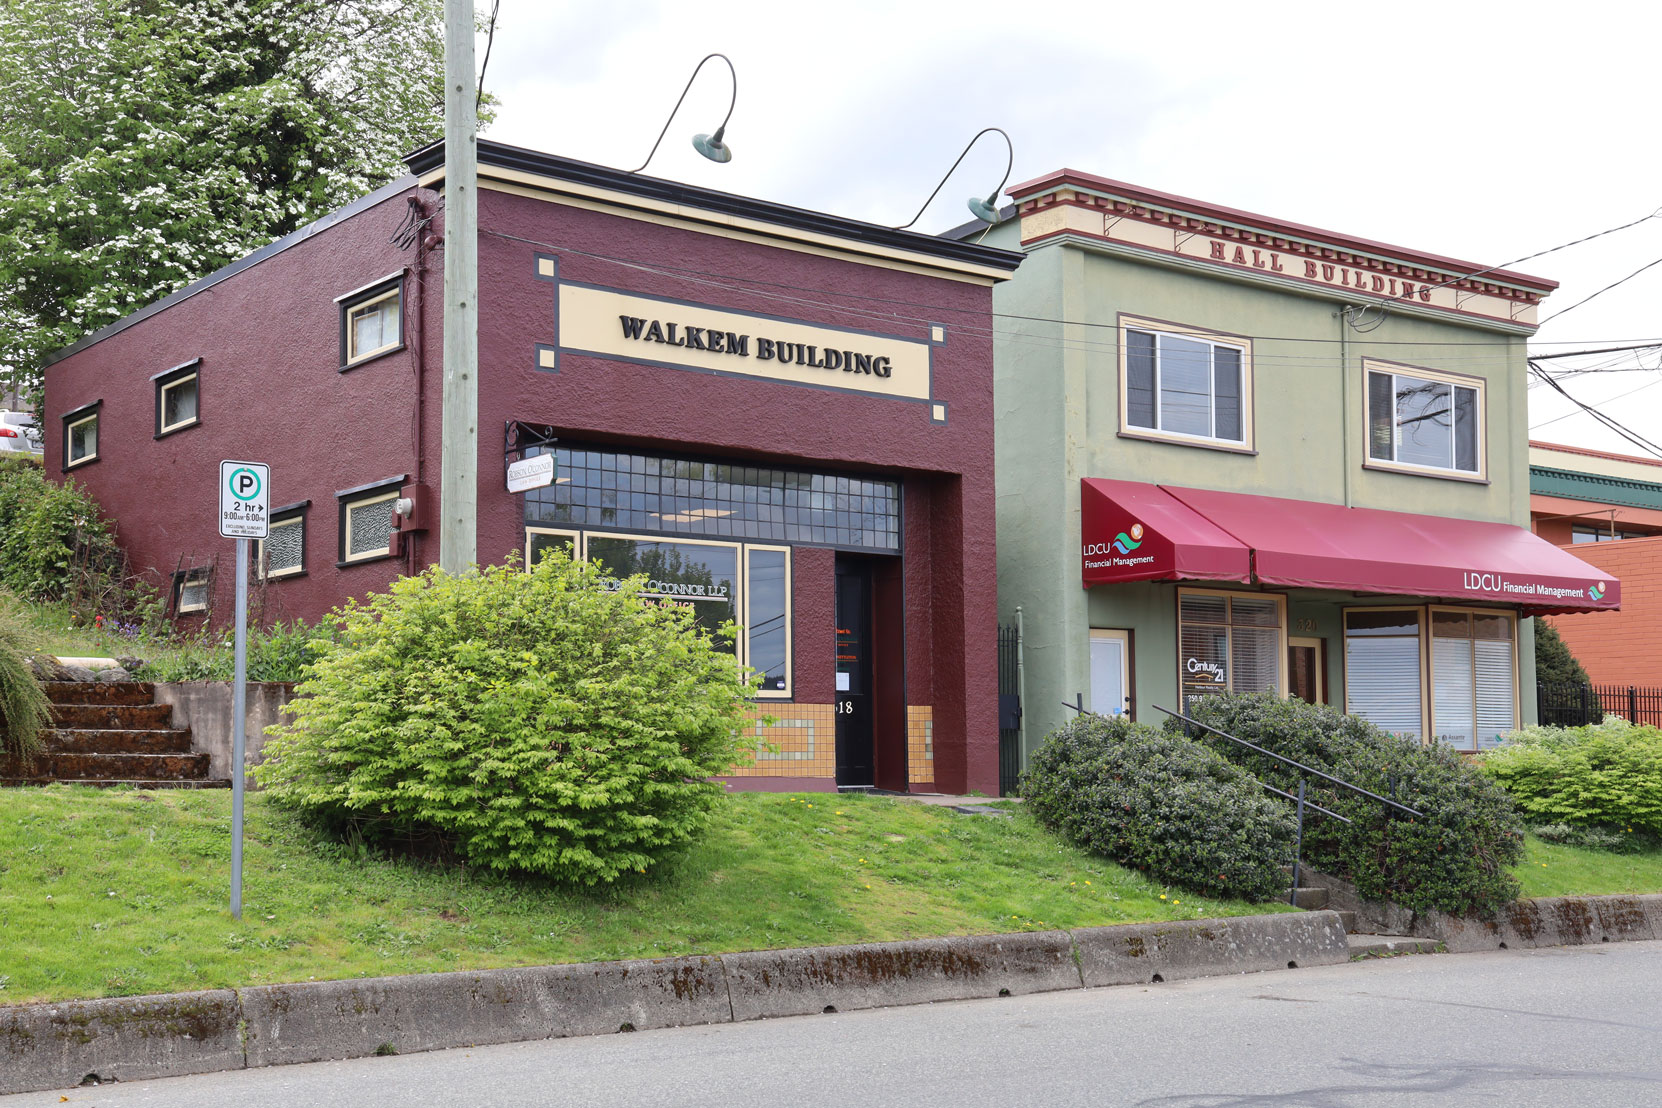 The Walkem Building, 318 1st Avenue (left) and the Hall Building, 320 1st Avenue (right) in downtown Ladysmith.